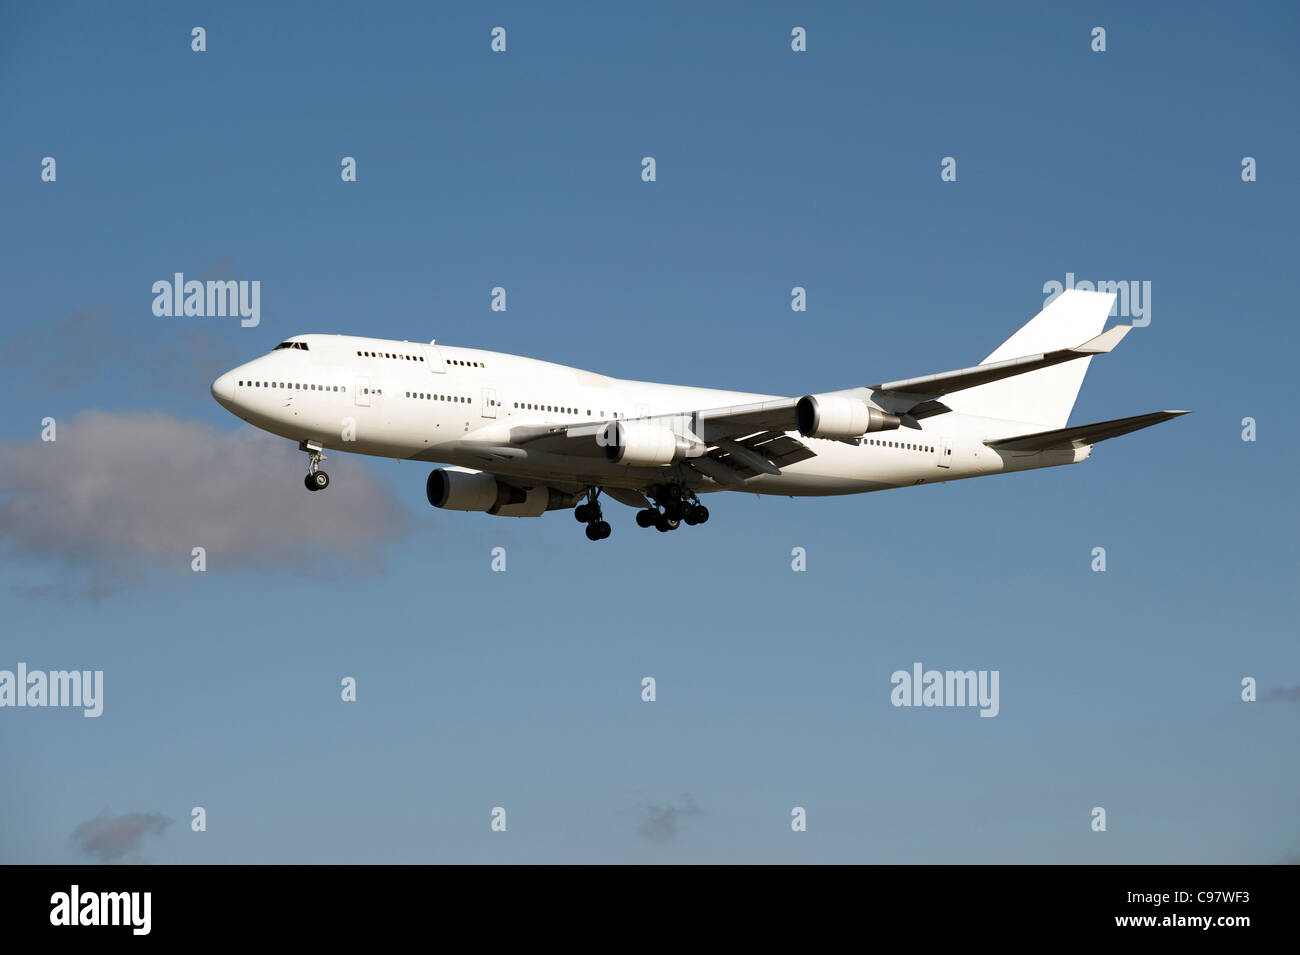 Airplane Boeing 747, plain white, no name or logo, for design layout - Stock Image